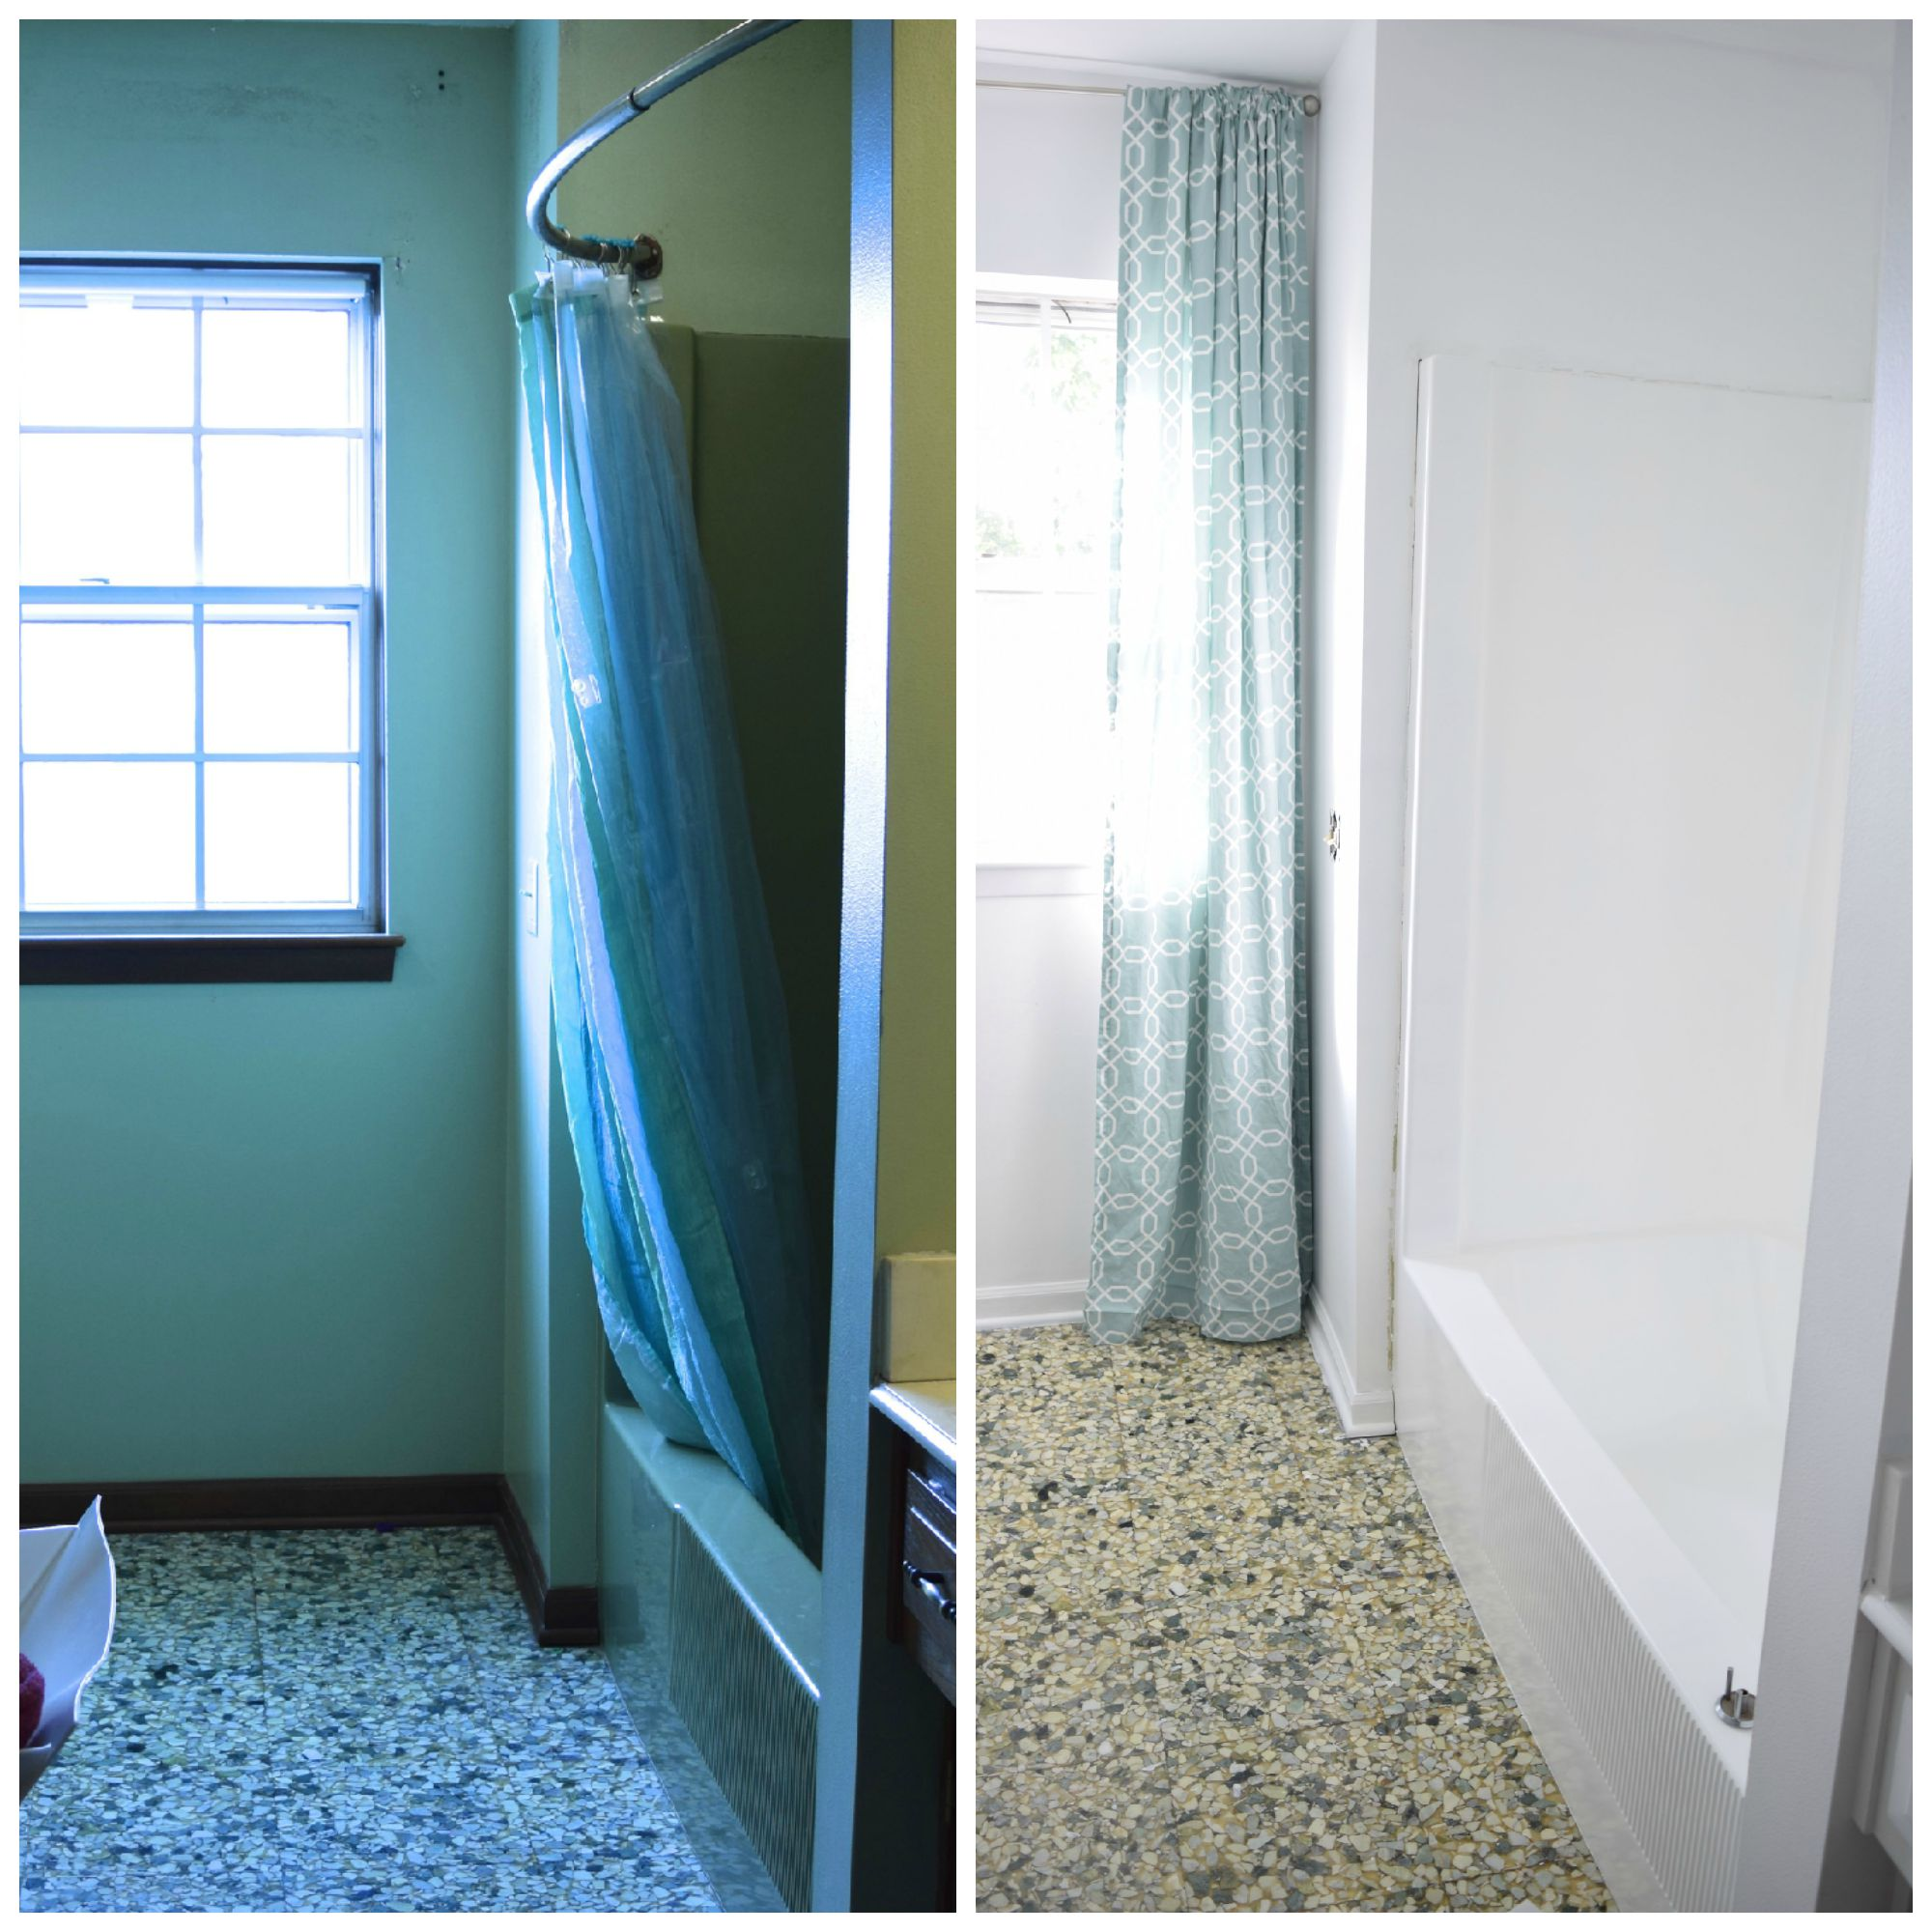 Shower before and after 2